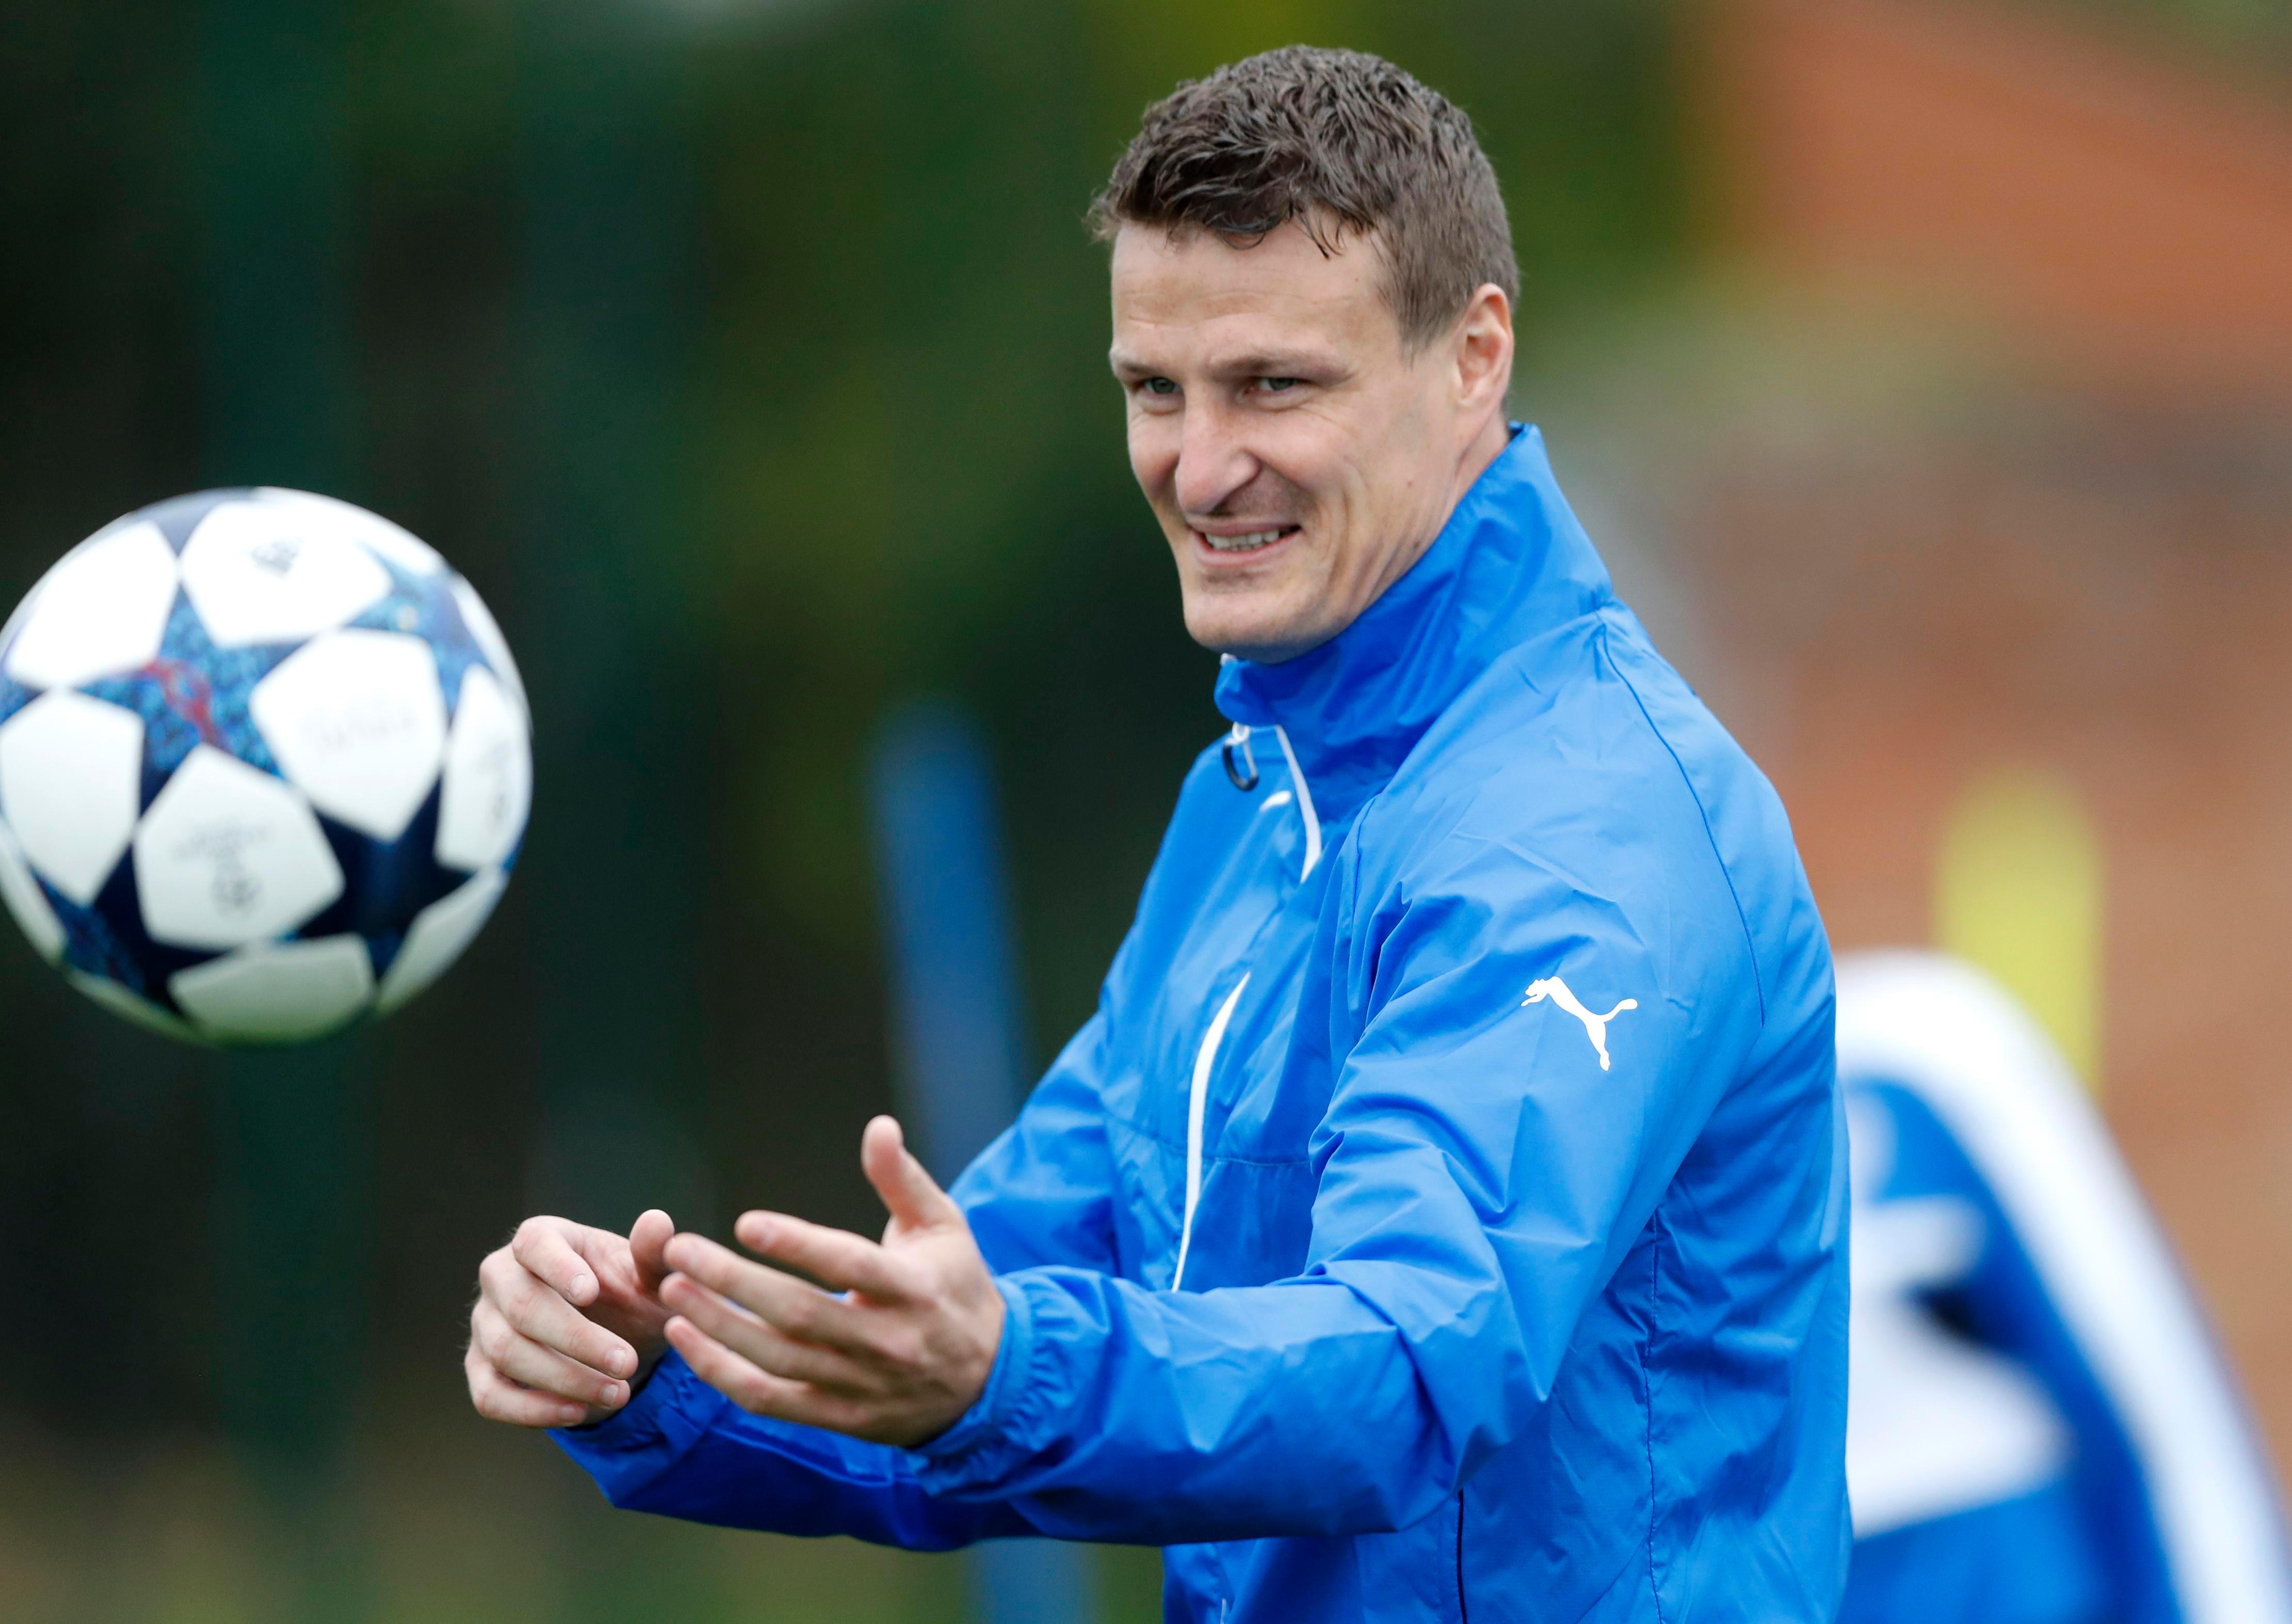 Leicester defender Robert Huth has hilariously trolled Arsenal's Alexis Sanchez on Twitter